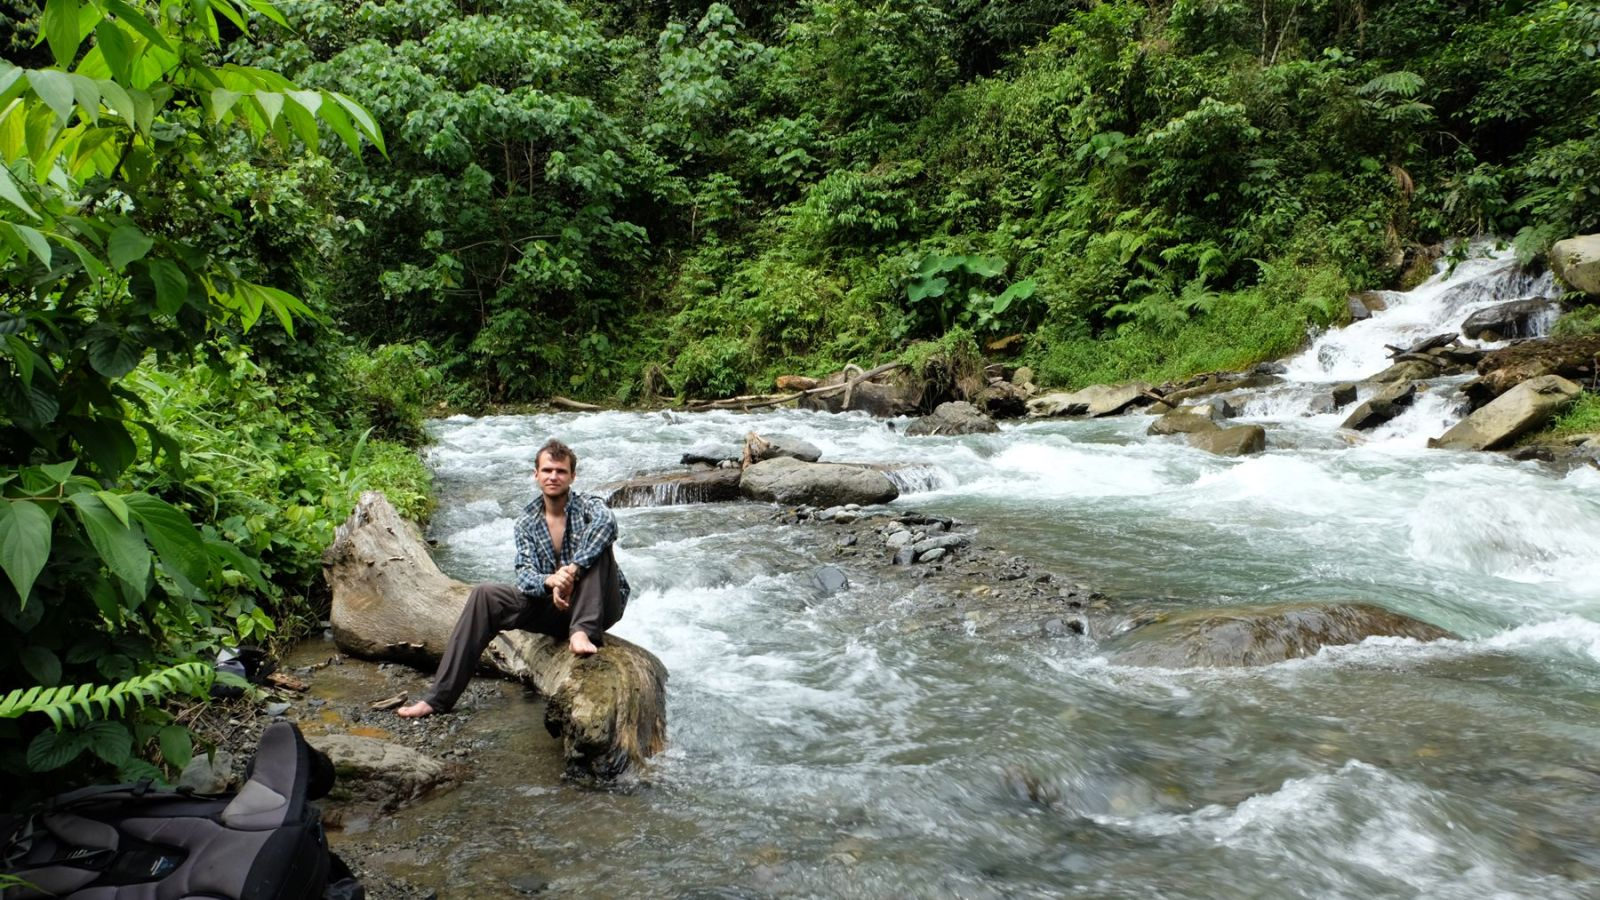 a photo of a hiker sitting on a rock next to a river in gunung leuser national park.